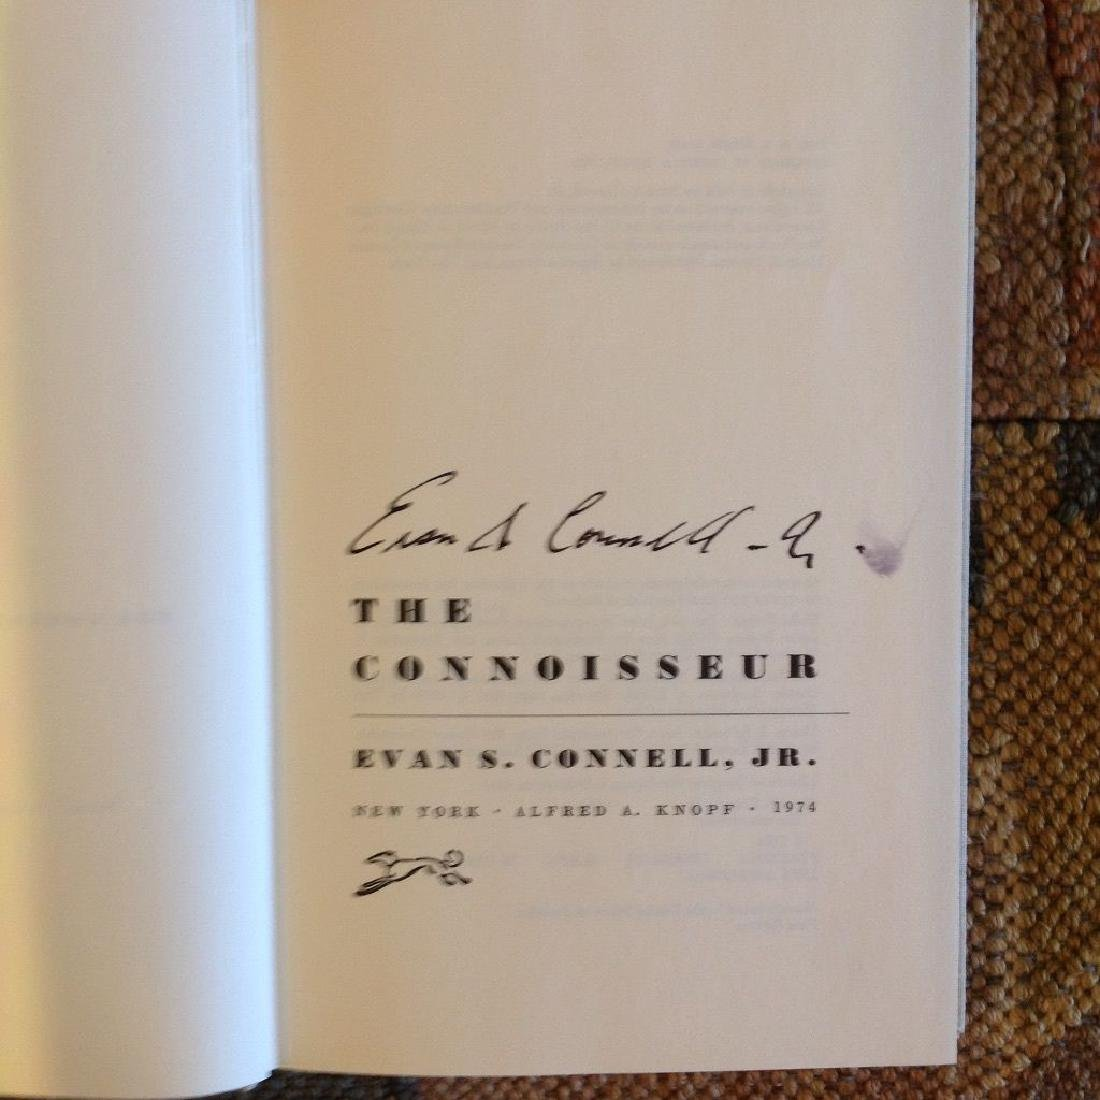 The Connoisseur by Evan S. Connell Autographed - 5